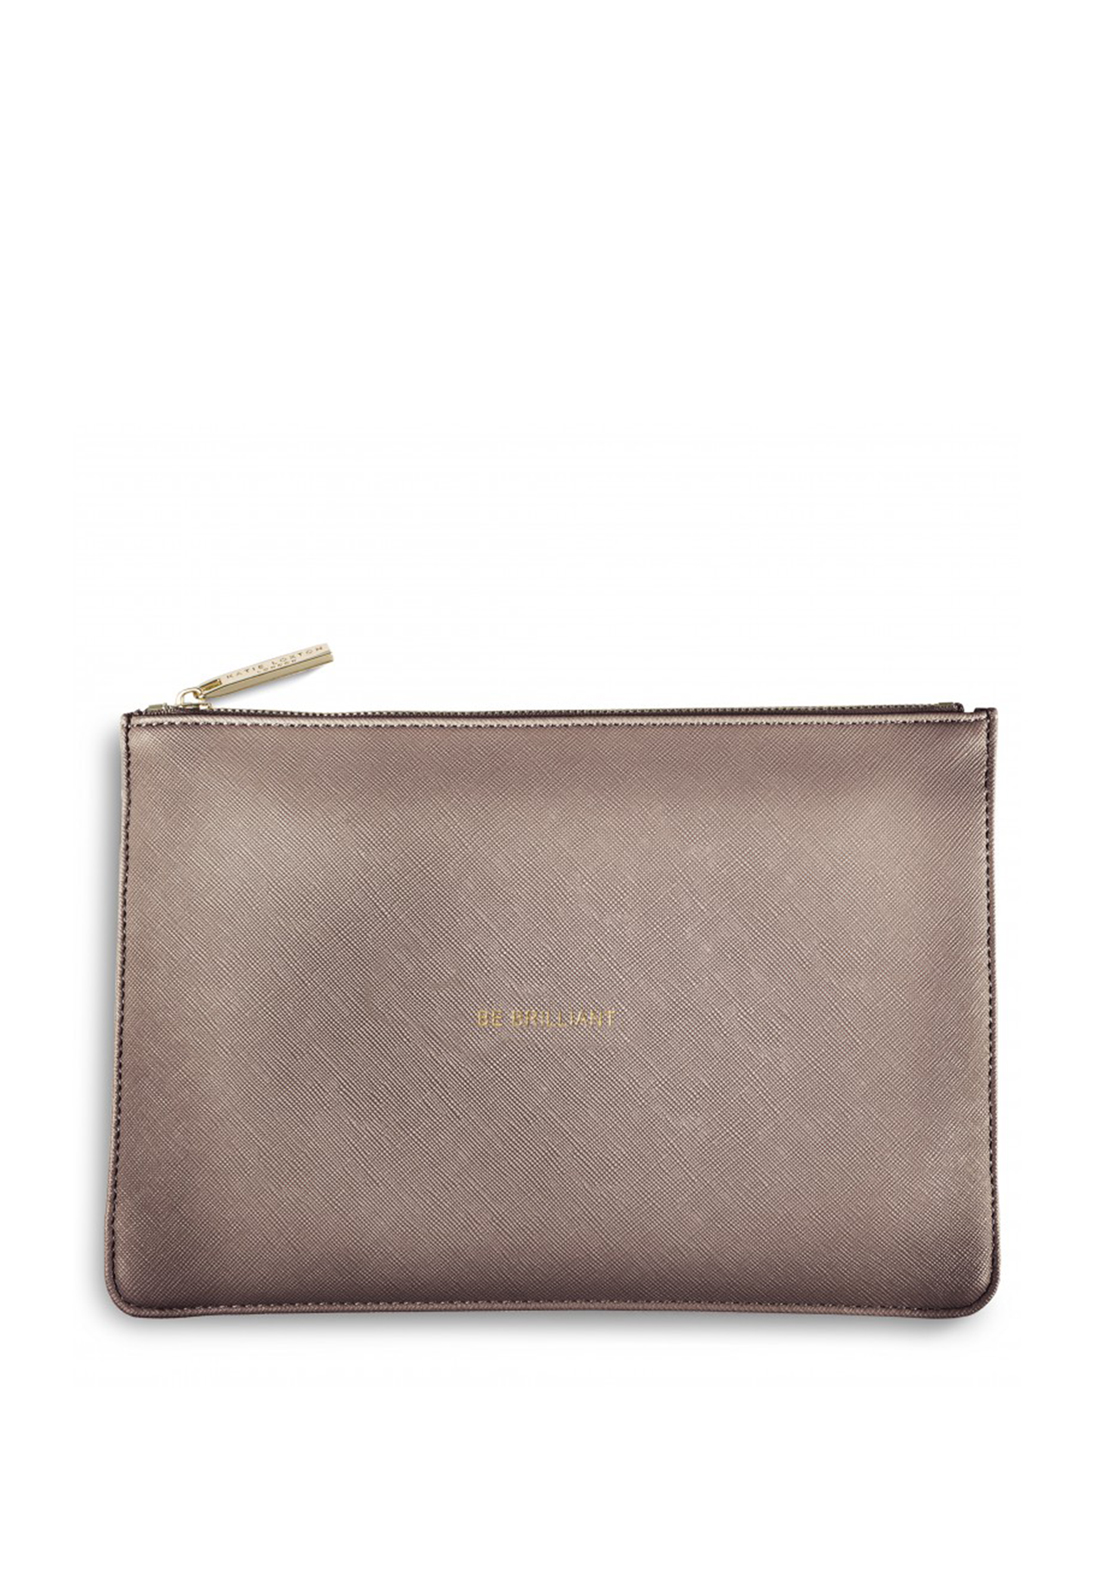 Katie Loxton Be Brilliant Pouch Bag, Rose Gold